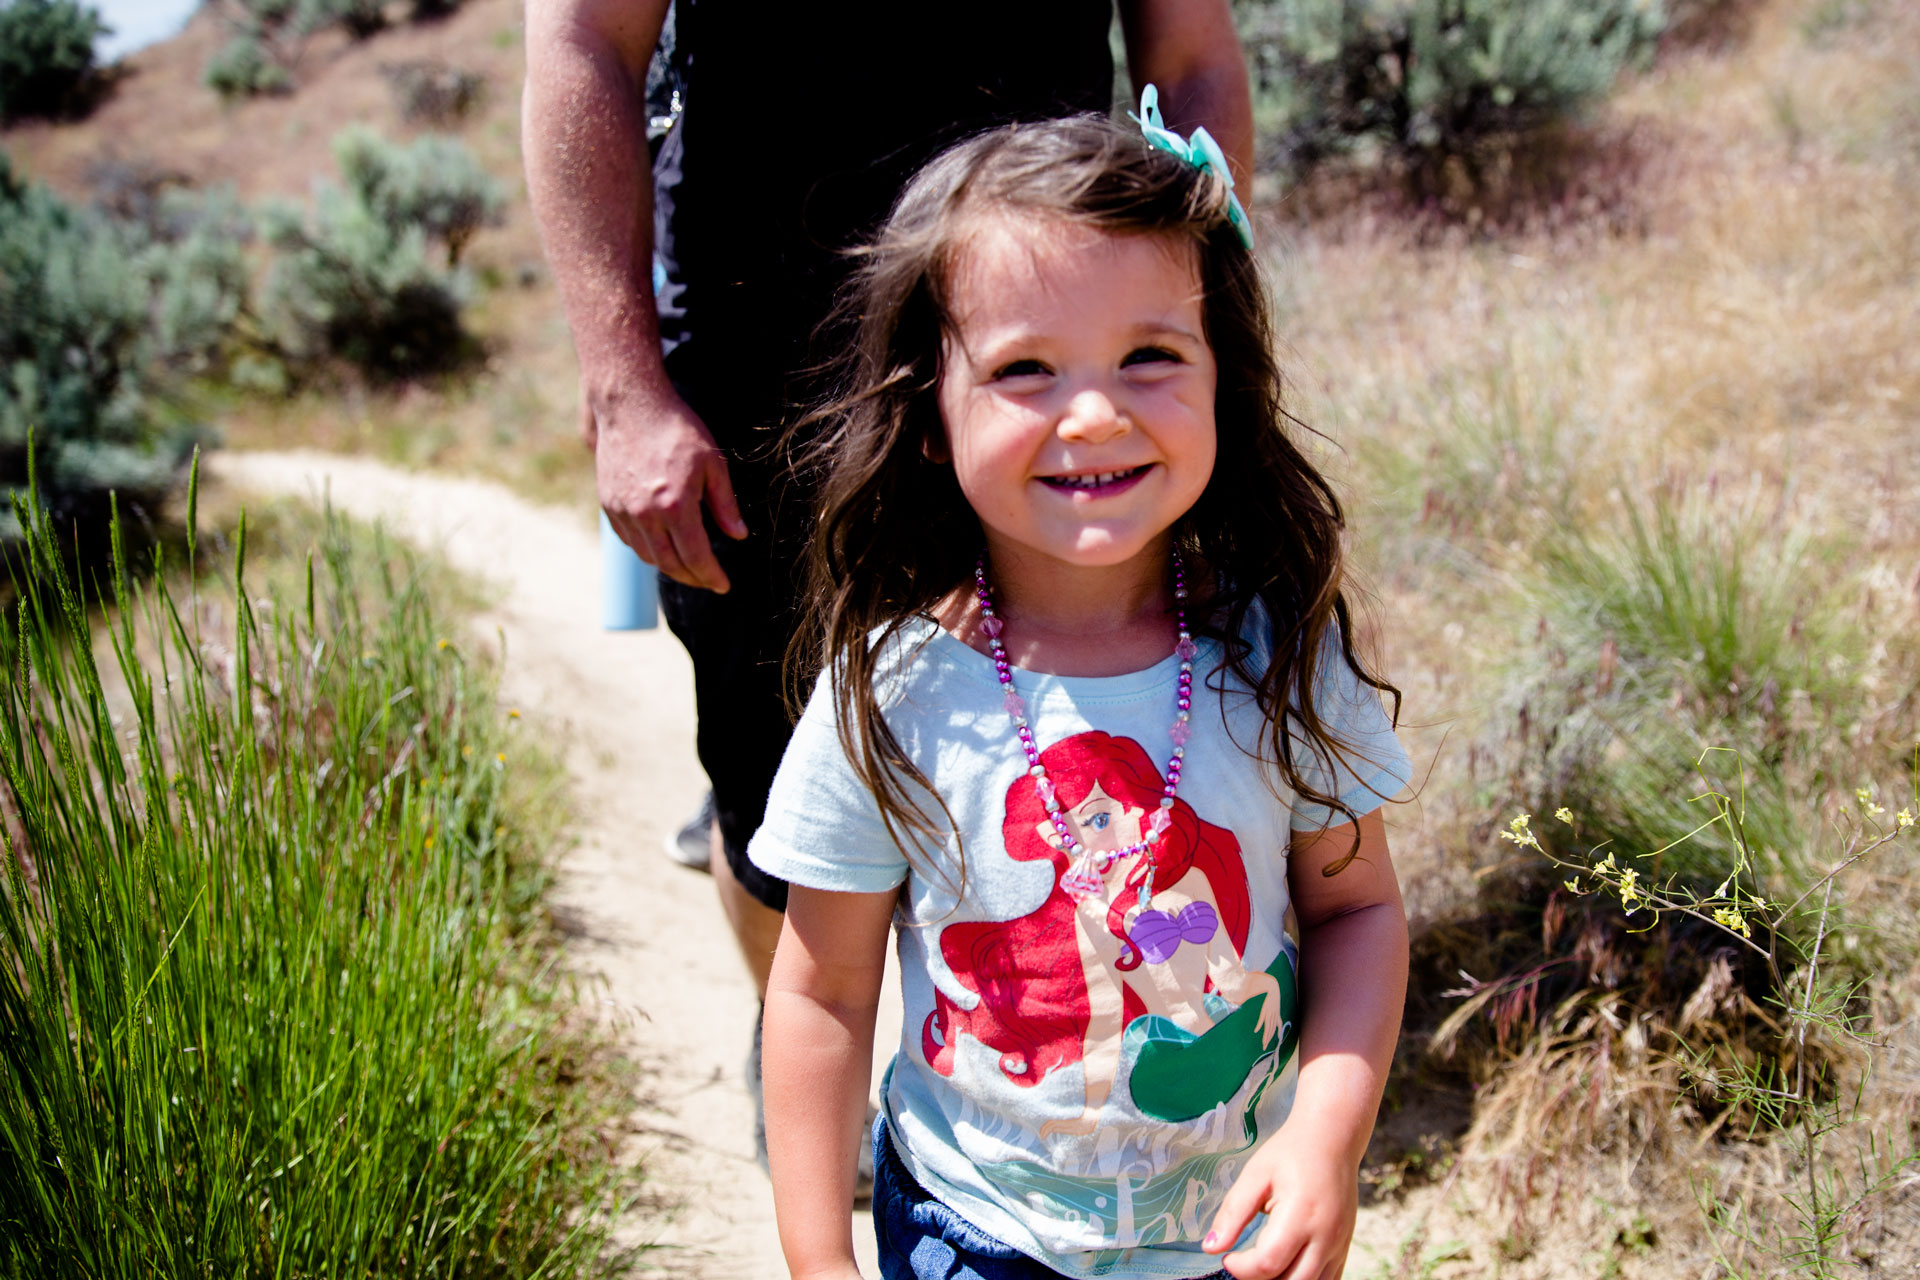 Little girl walking down the trail with daddy close behind smiling